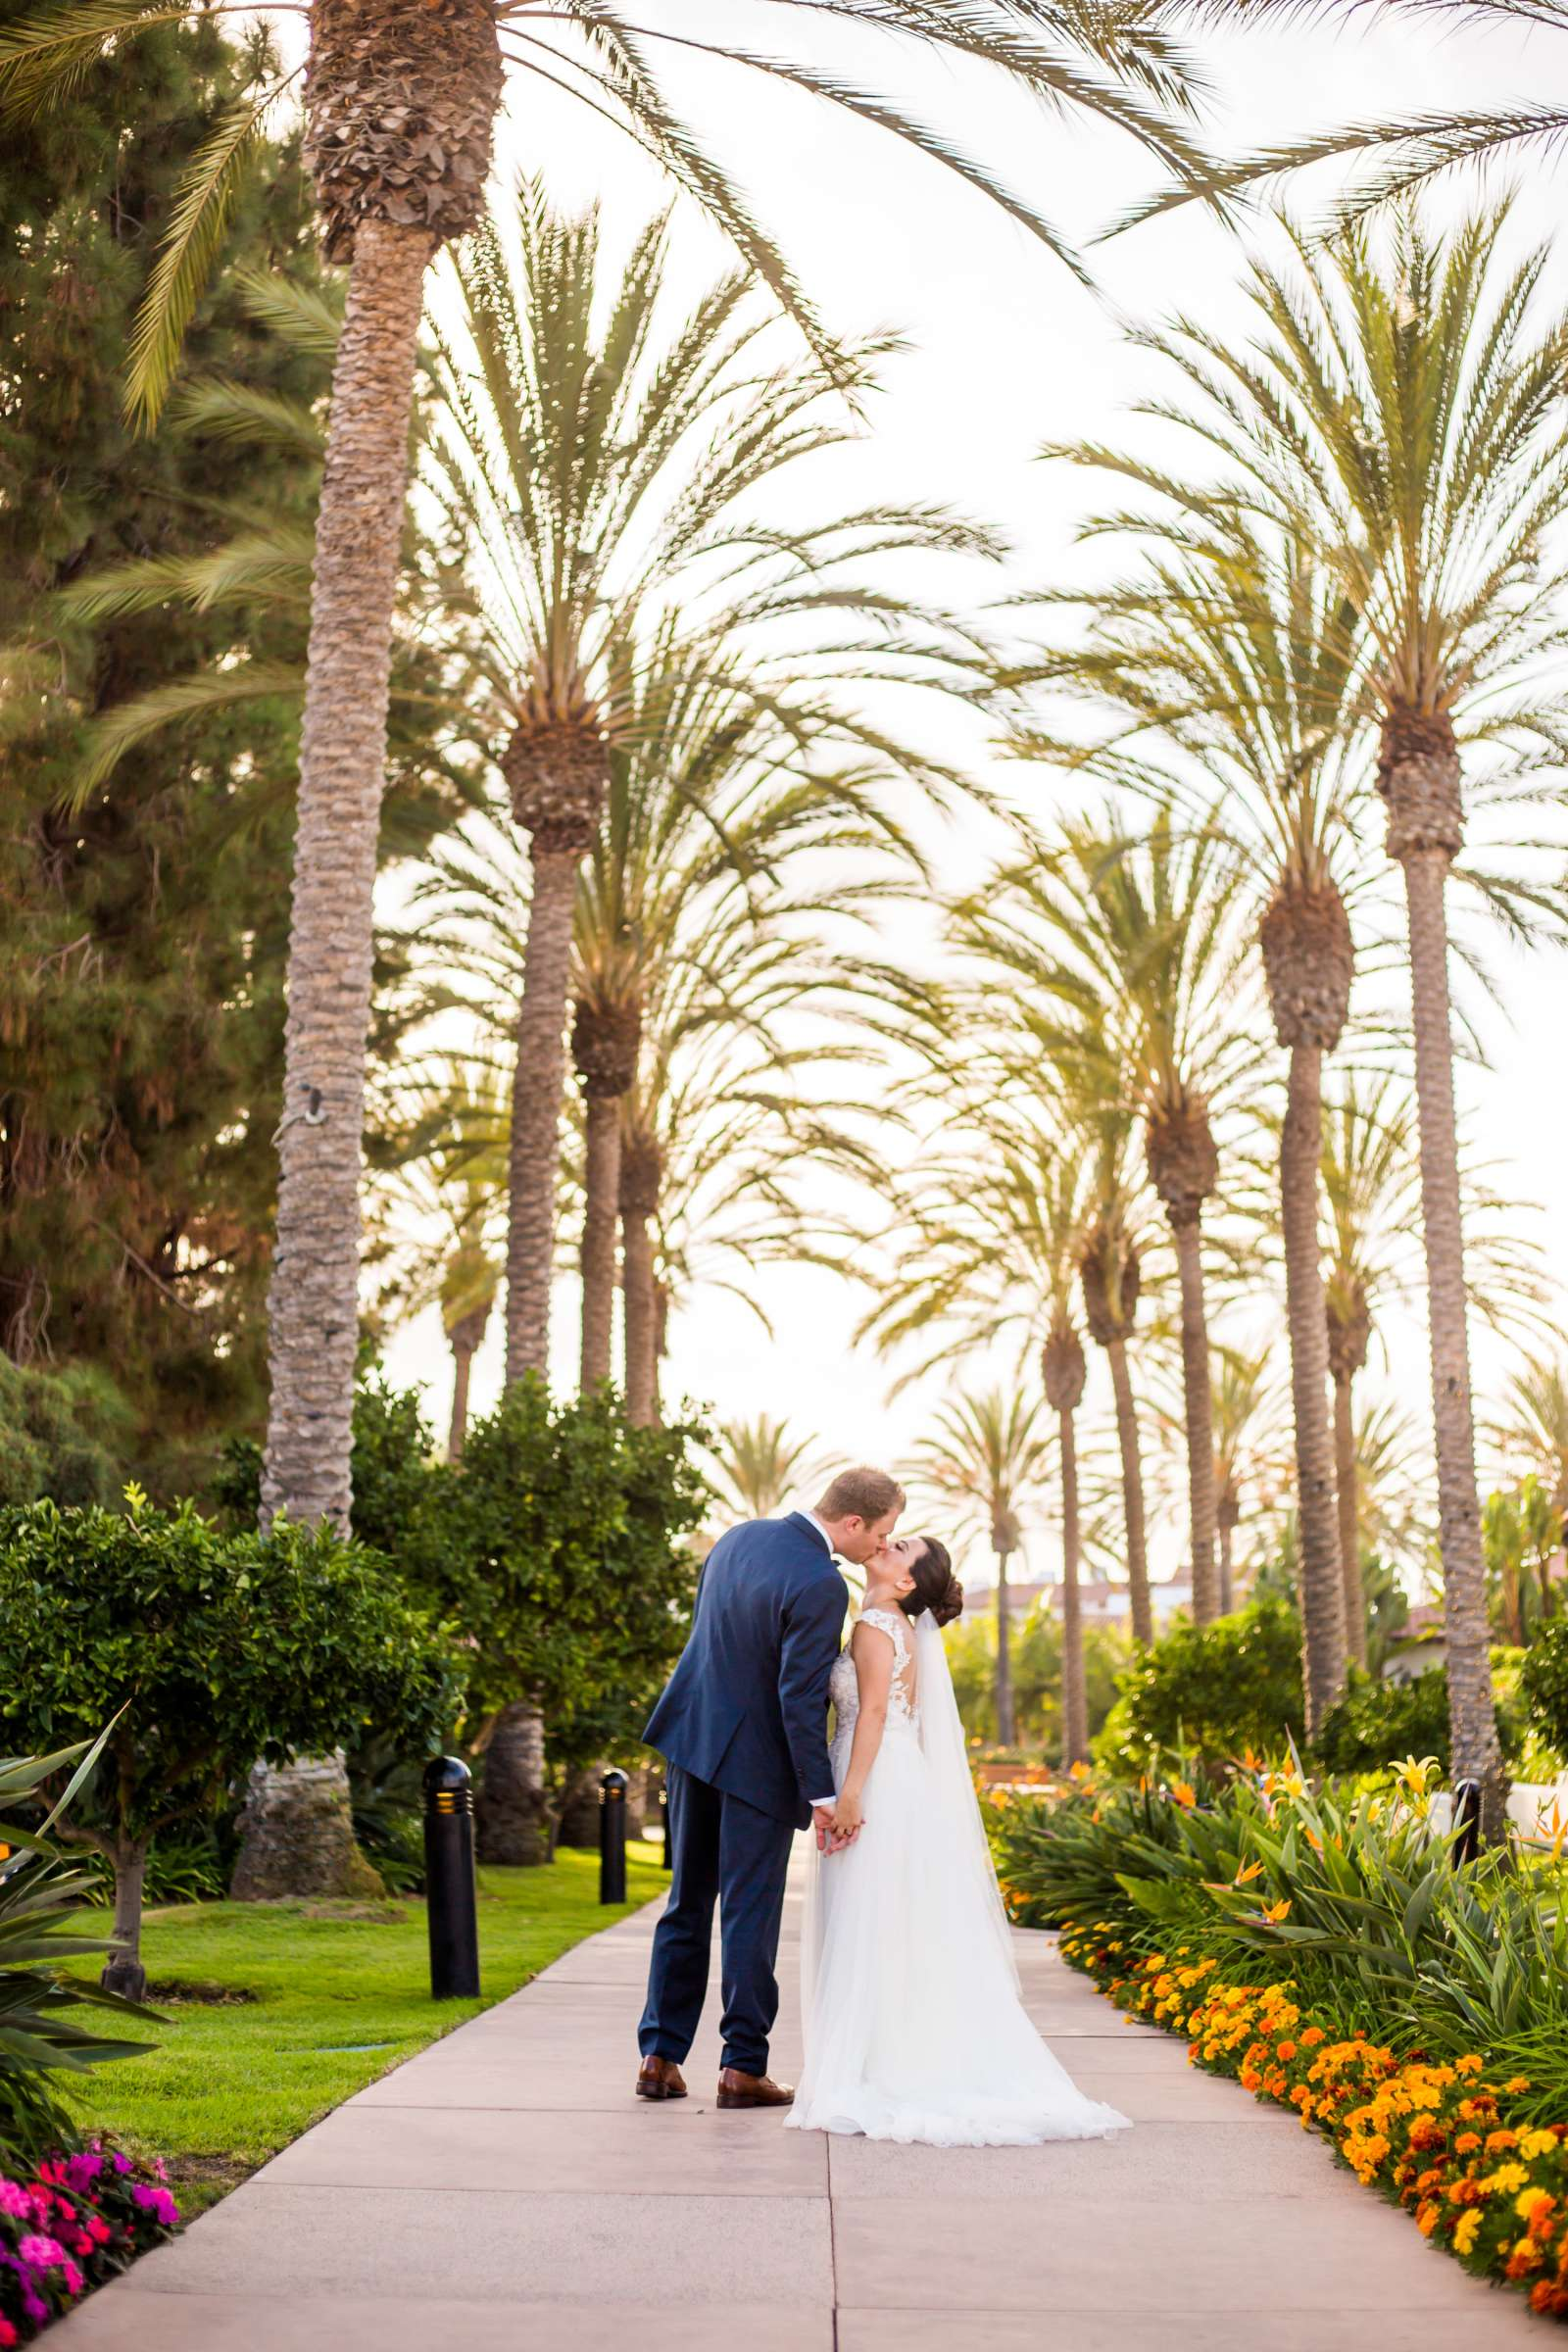 Omni La Costa Resort & Spa Wedding coordinated by Bliss Events, Pamela and Sean Wedding Photo #19 by True Photography